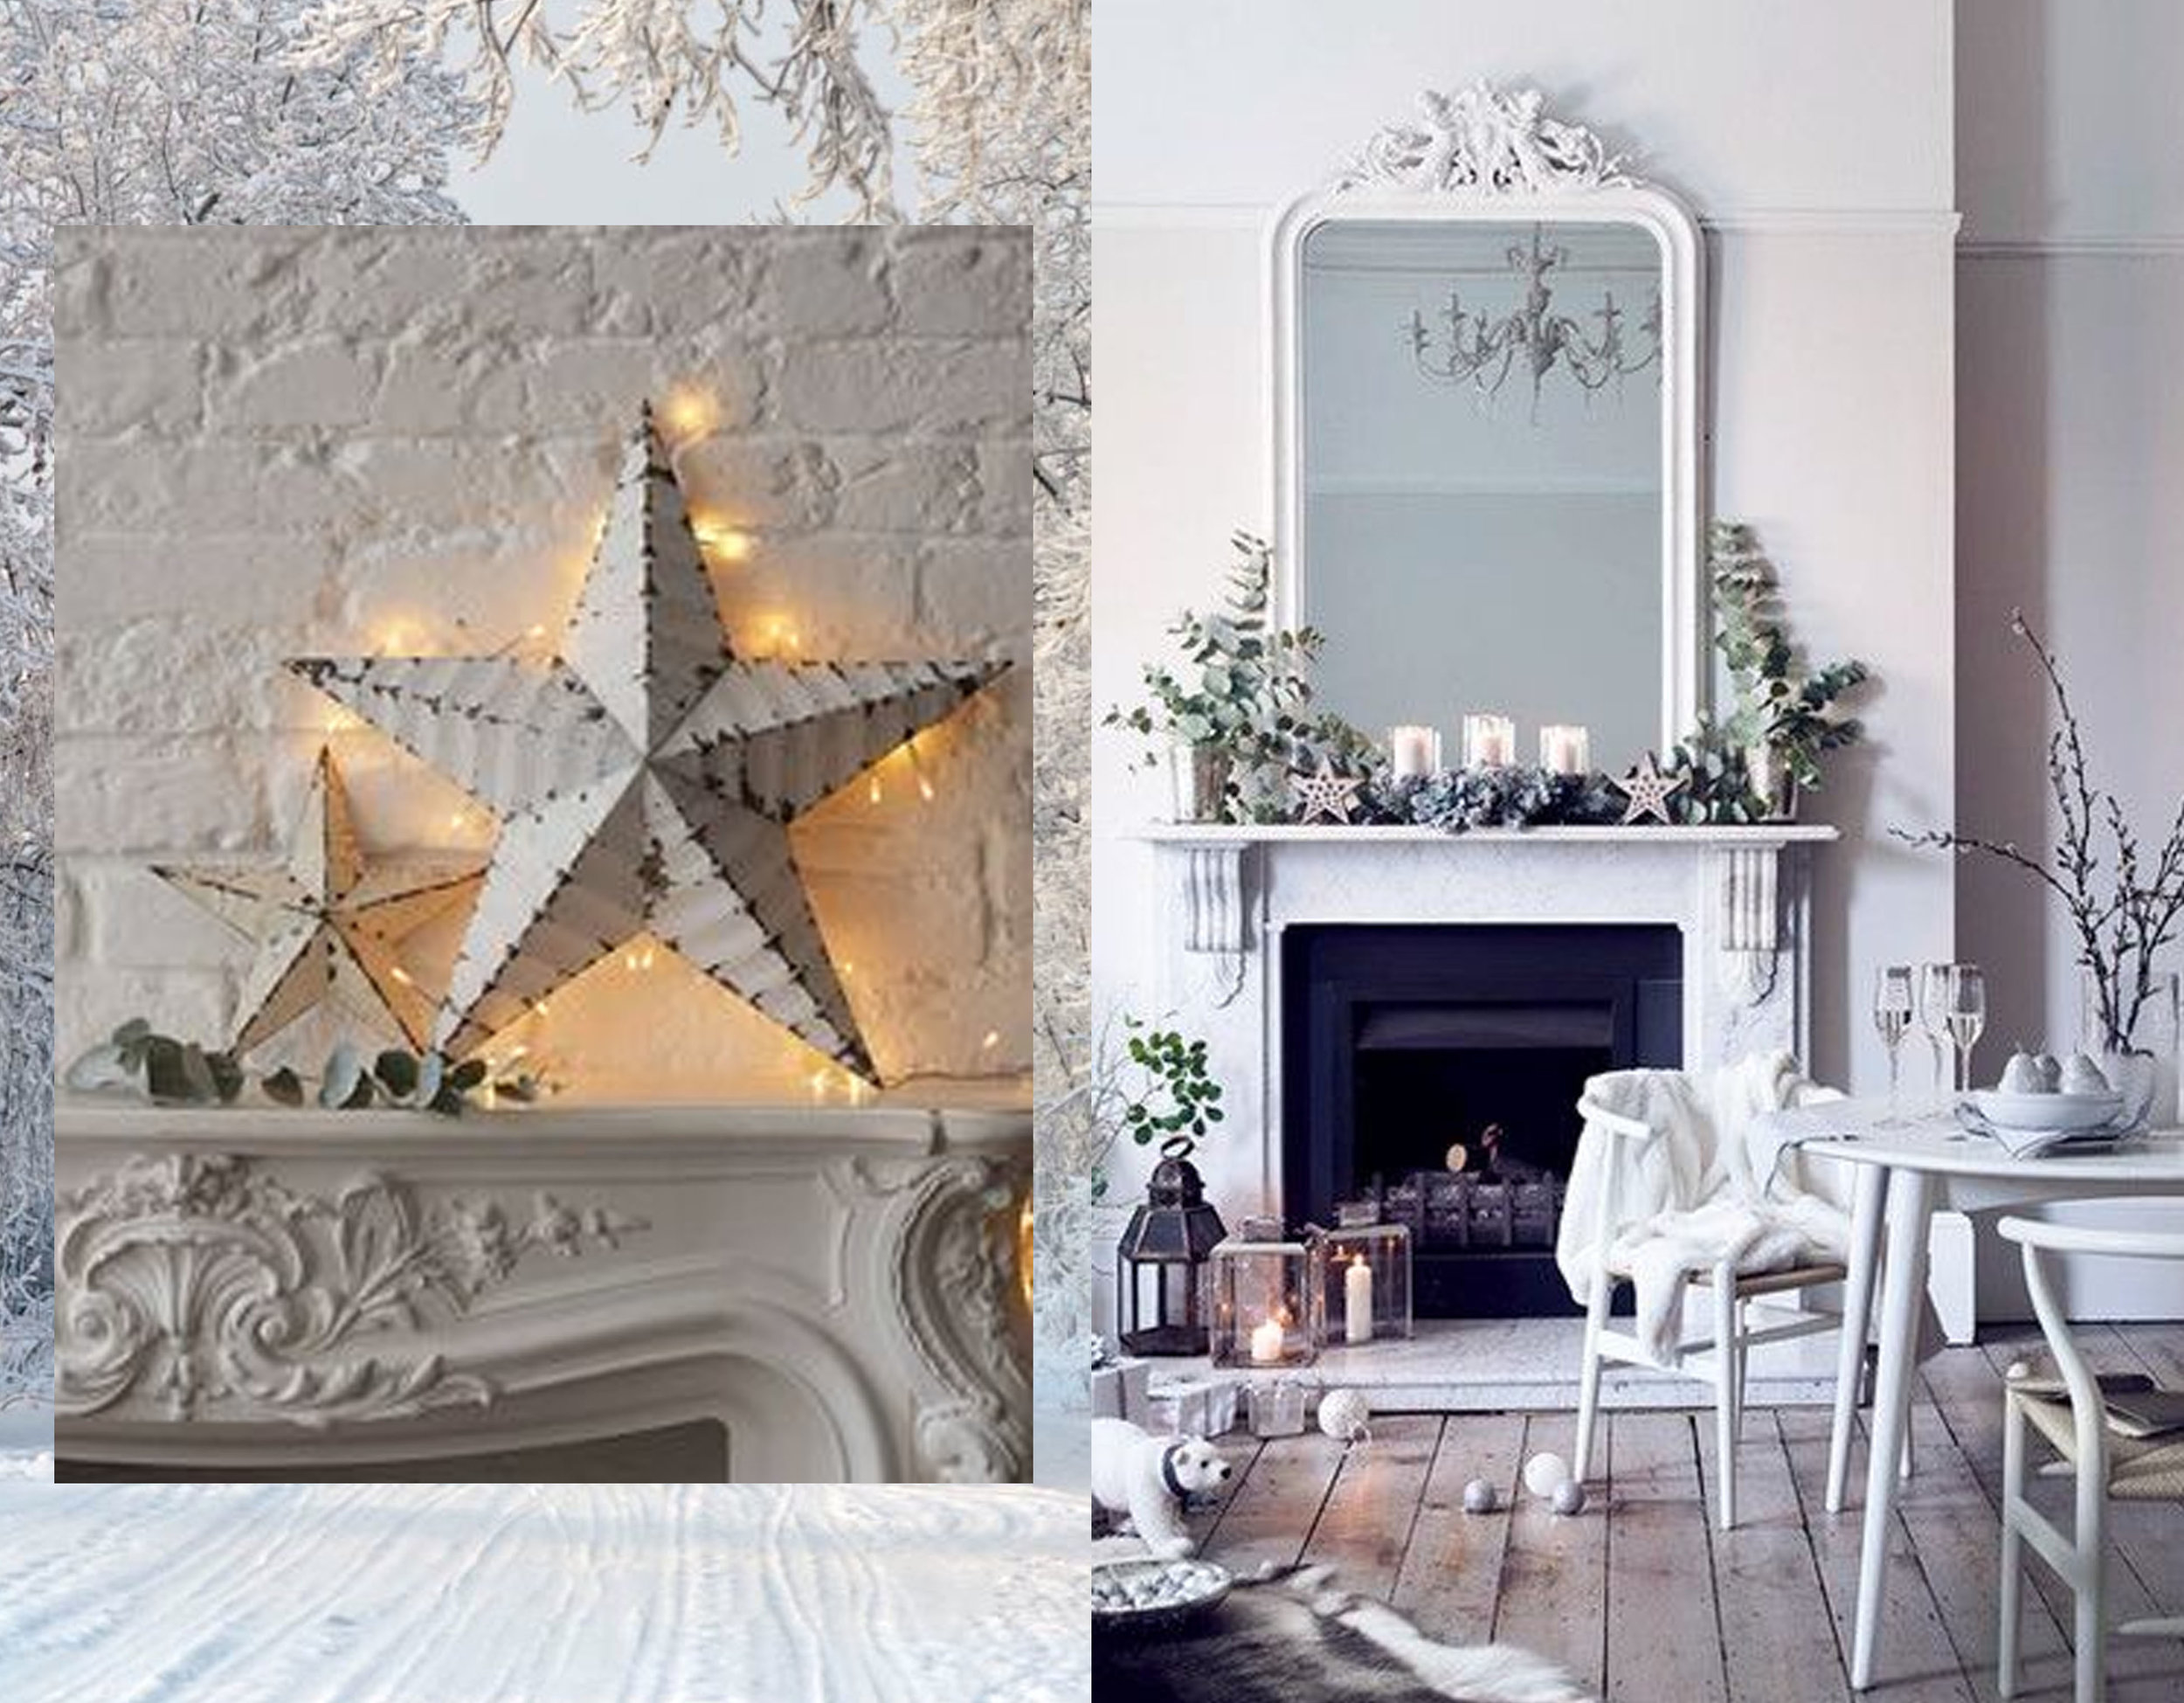 star light via  Pinterest  - decorated fireplace via  Lonny